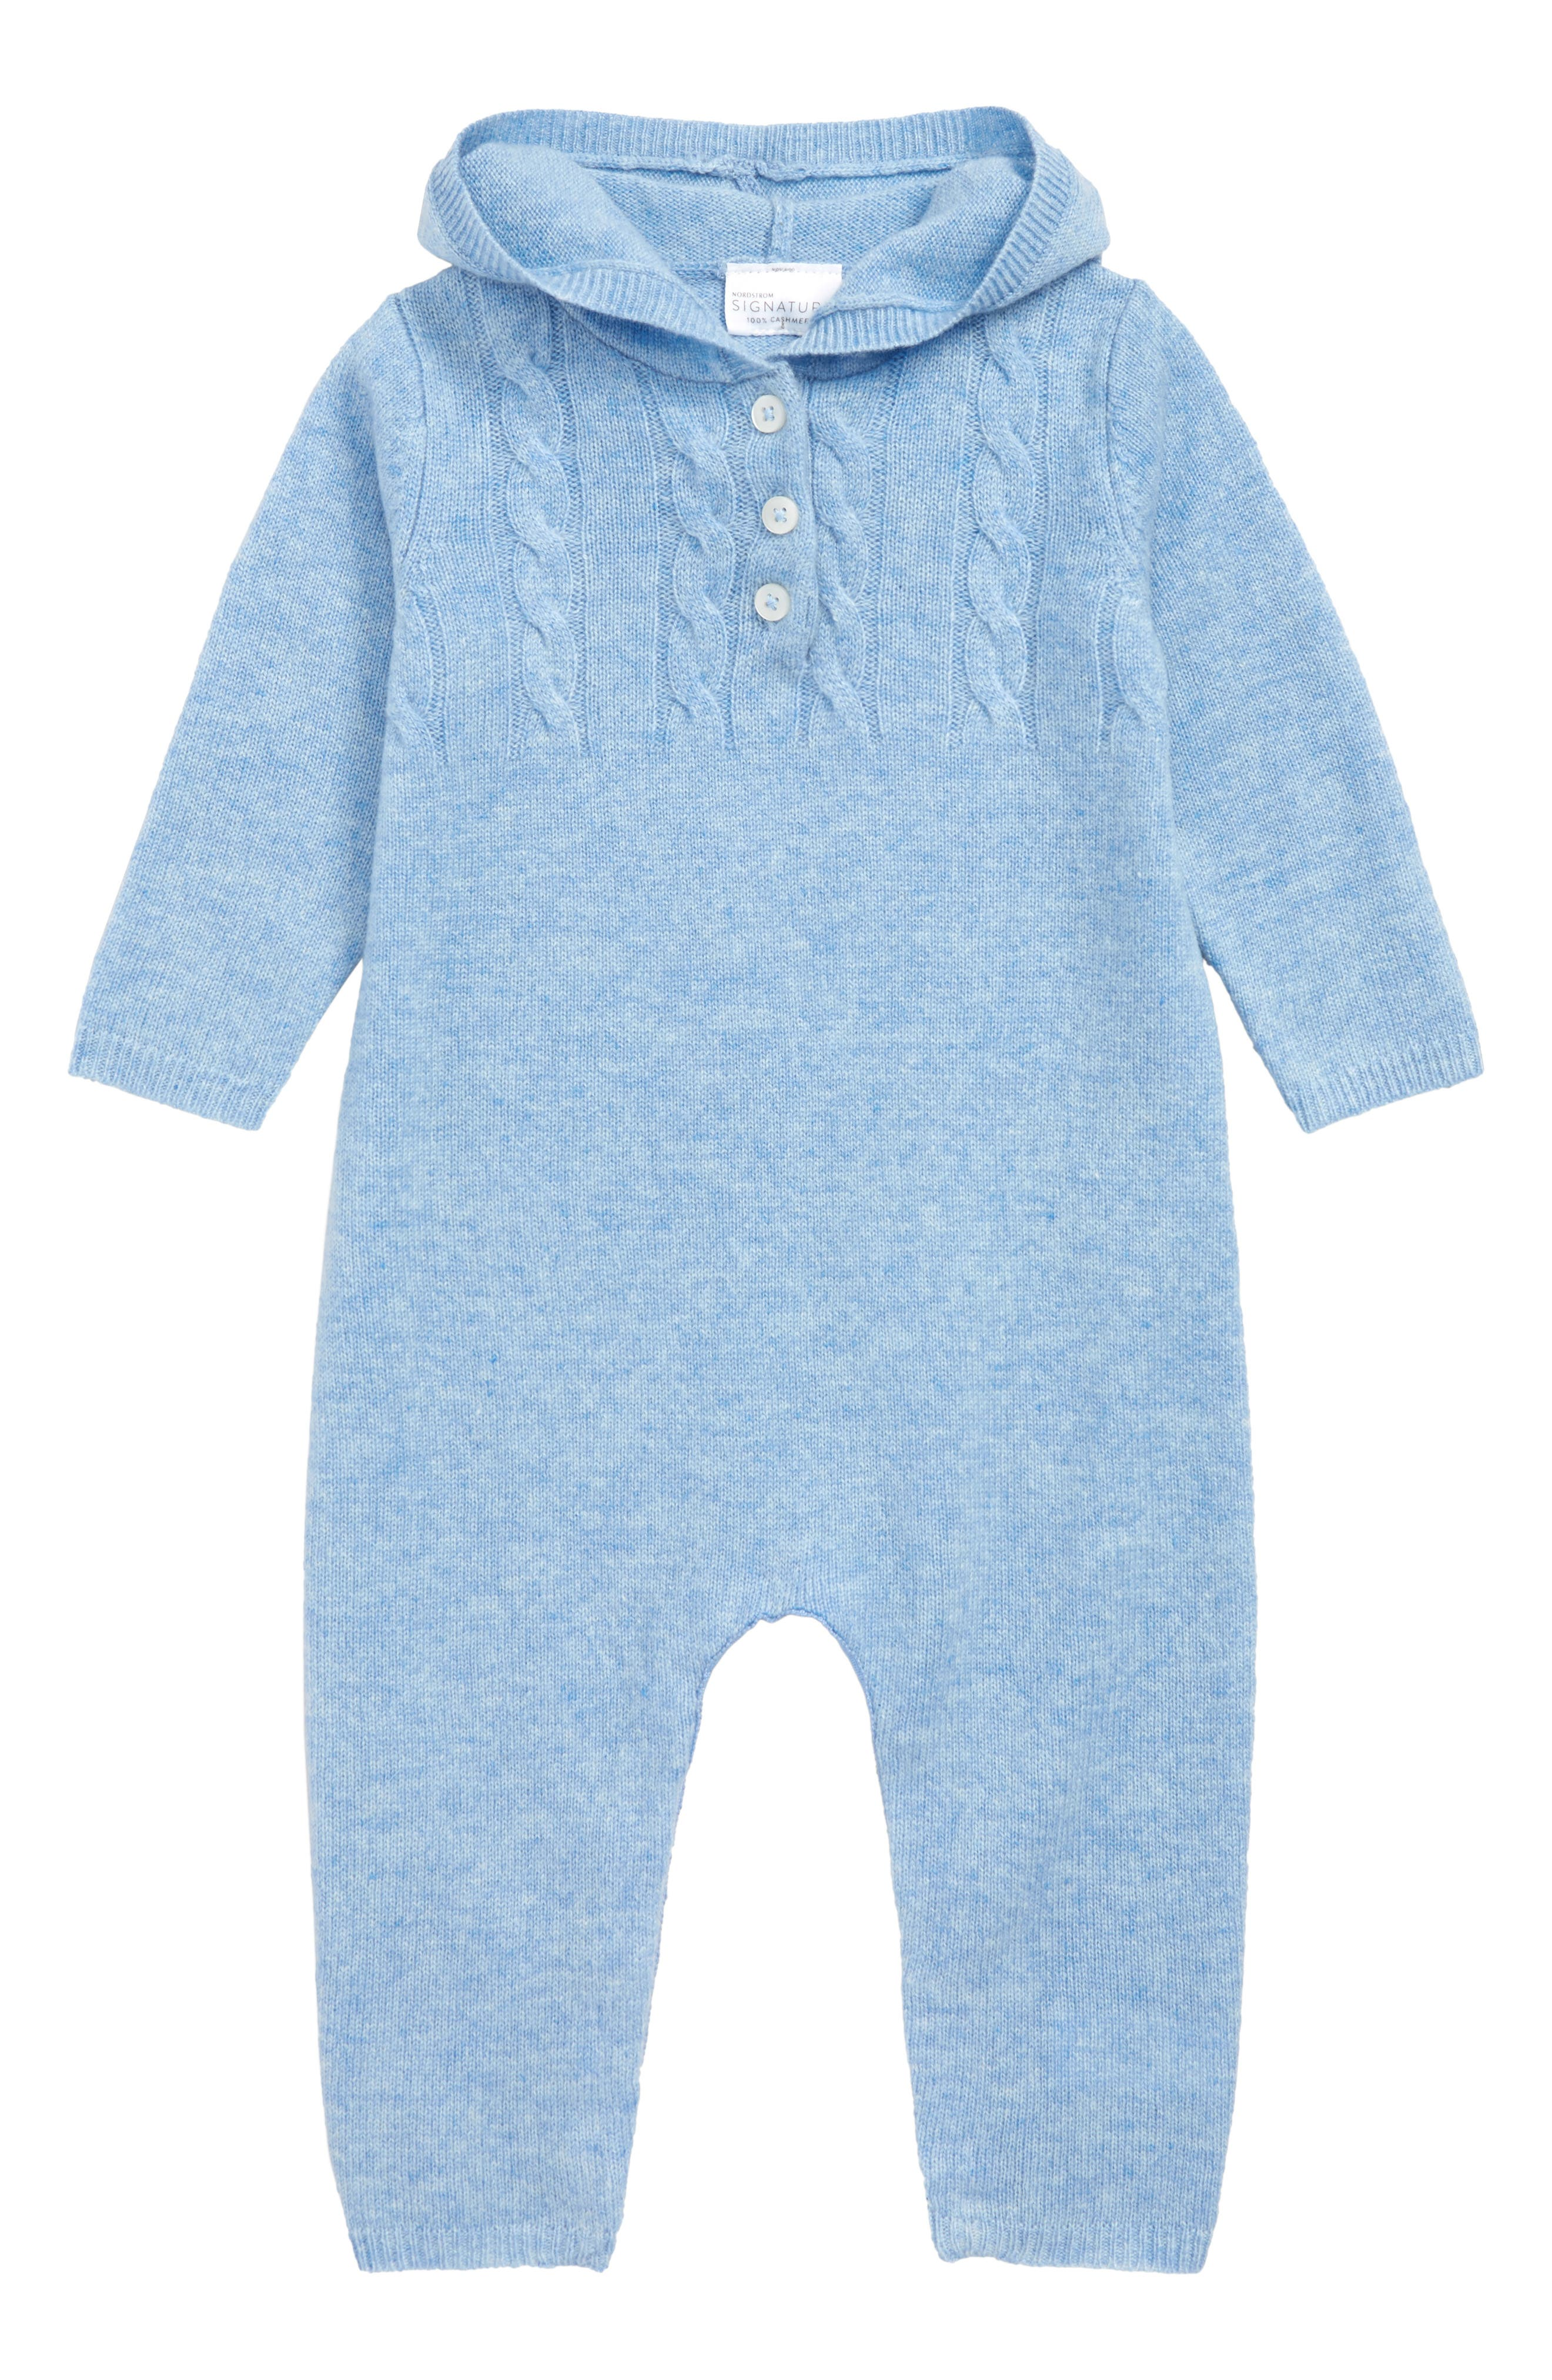 Cashmere Hooded Romper,                             Main thumbnail 1, color,                             BLUE WHISPER HEATHER